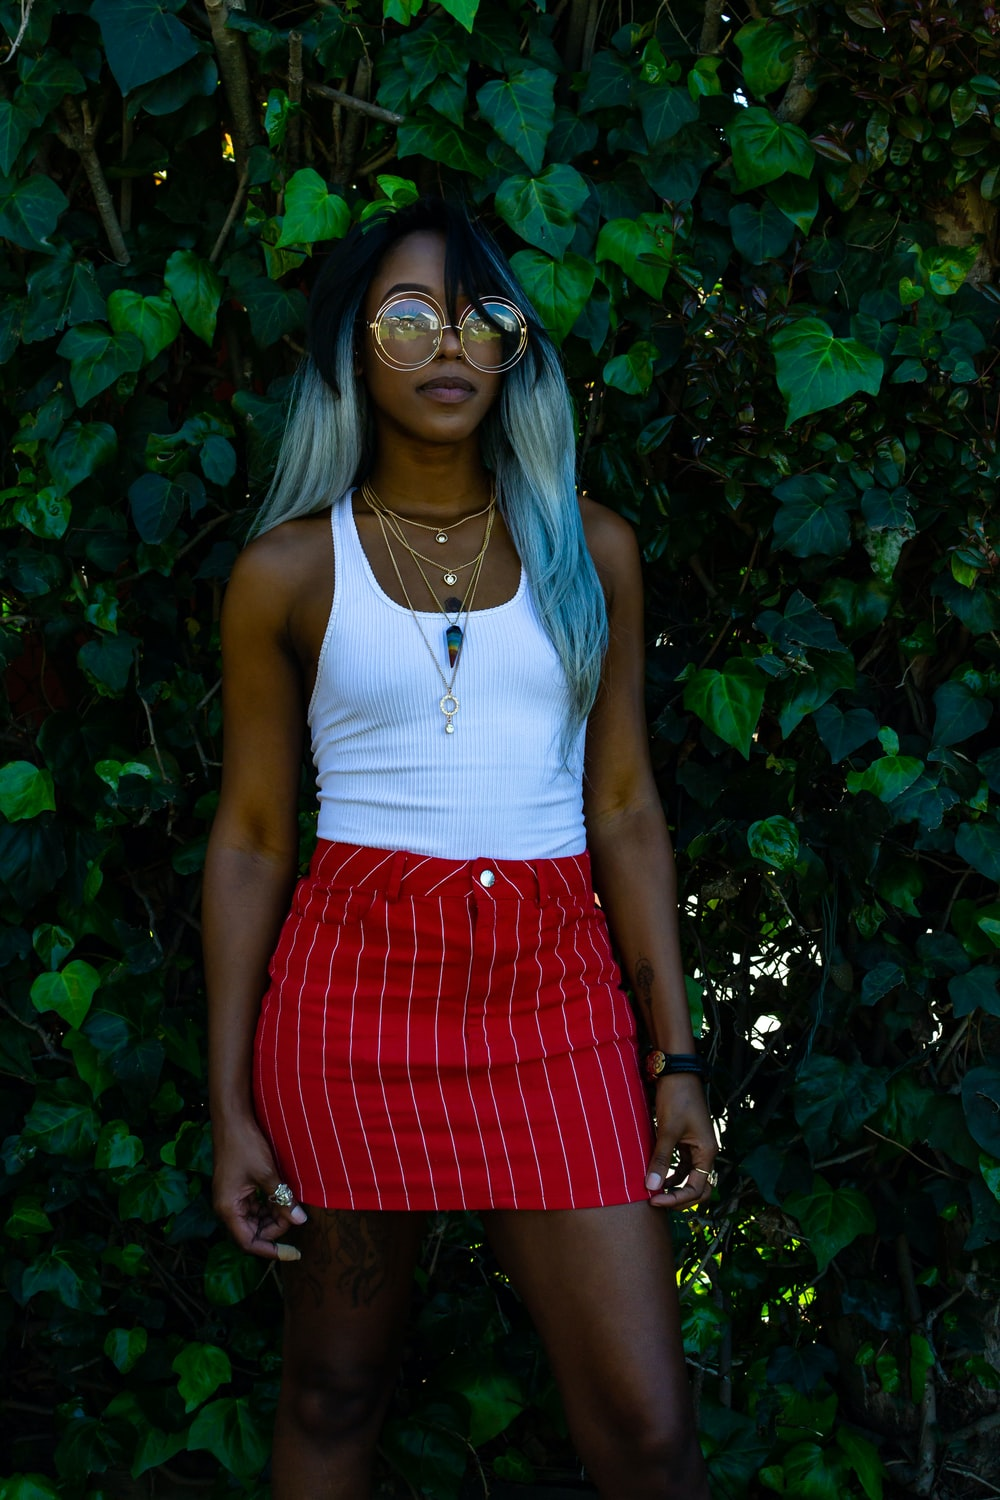 women's white tank top and red skirt